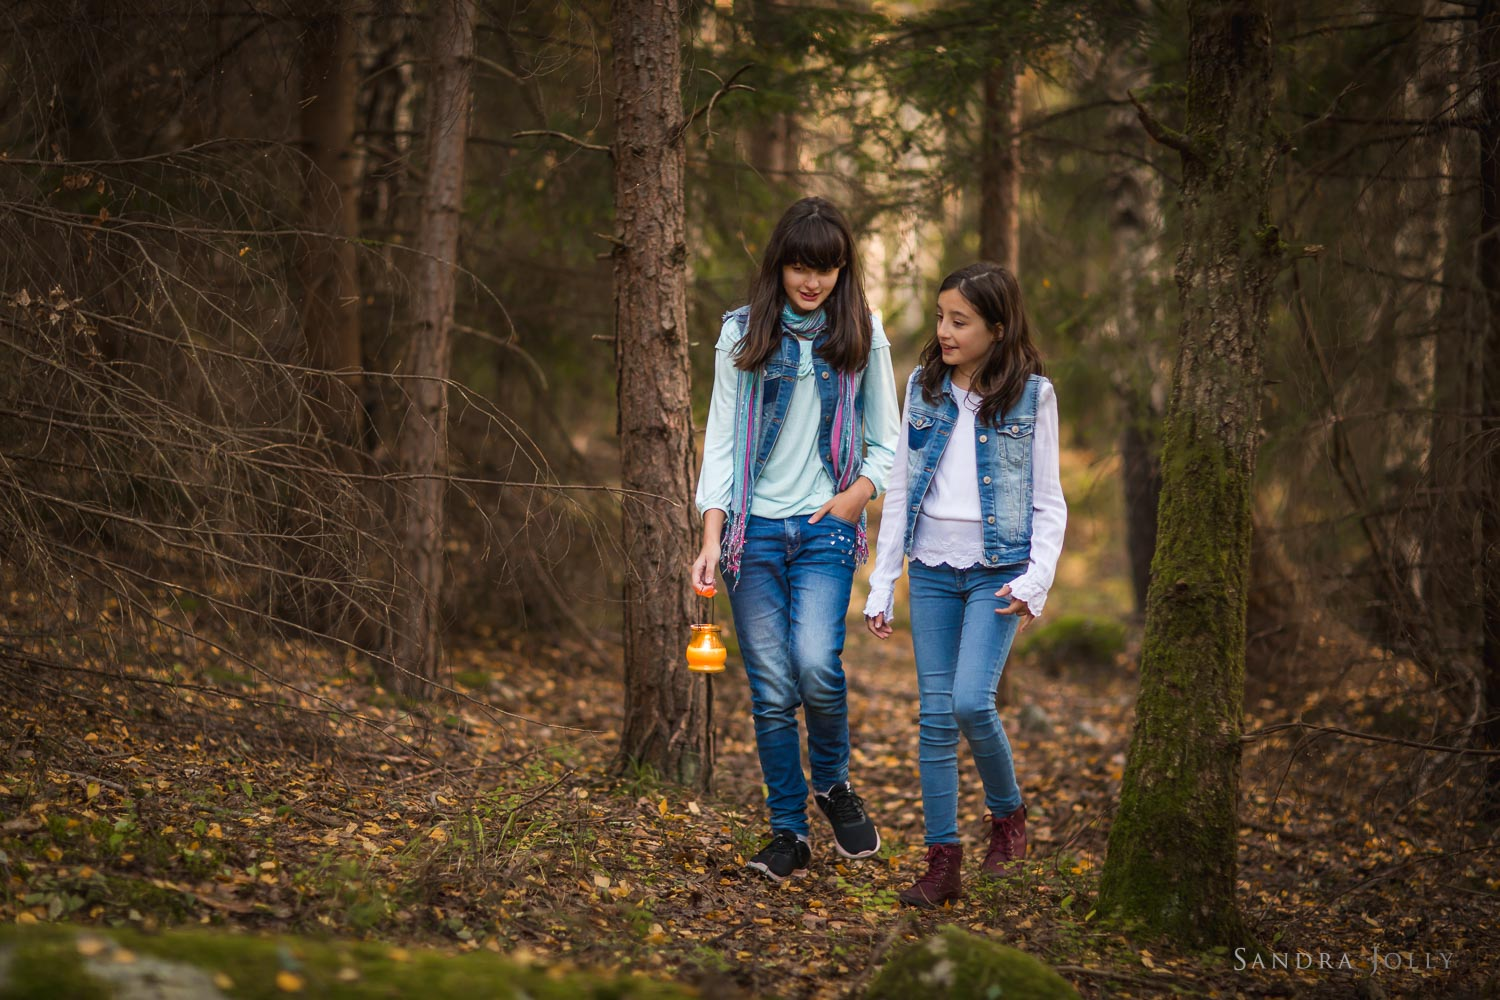 sisters-walking-in-woods-with-candle-by-Sandra-Jolly-familjefotografering.jpg